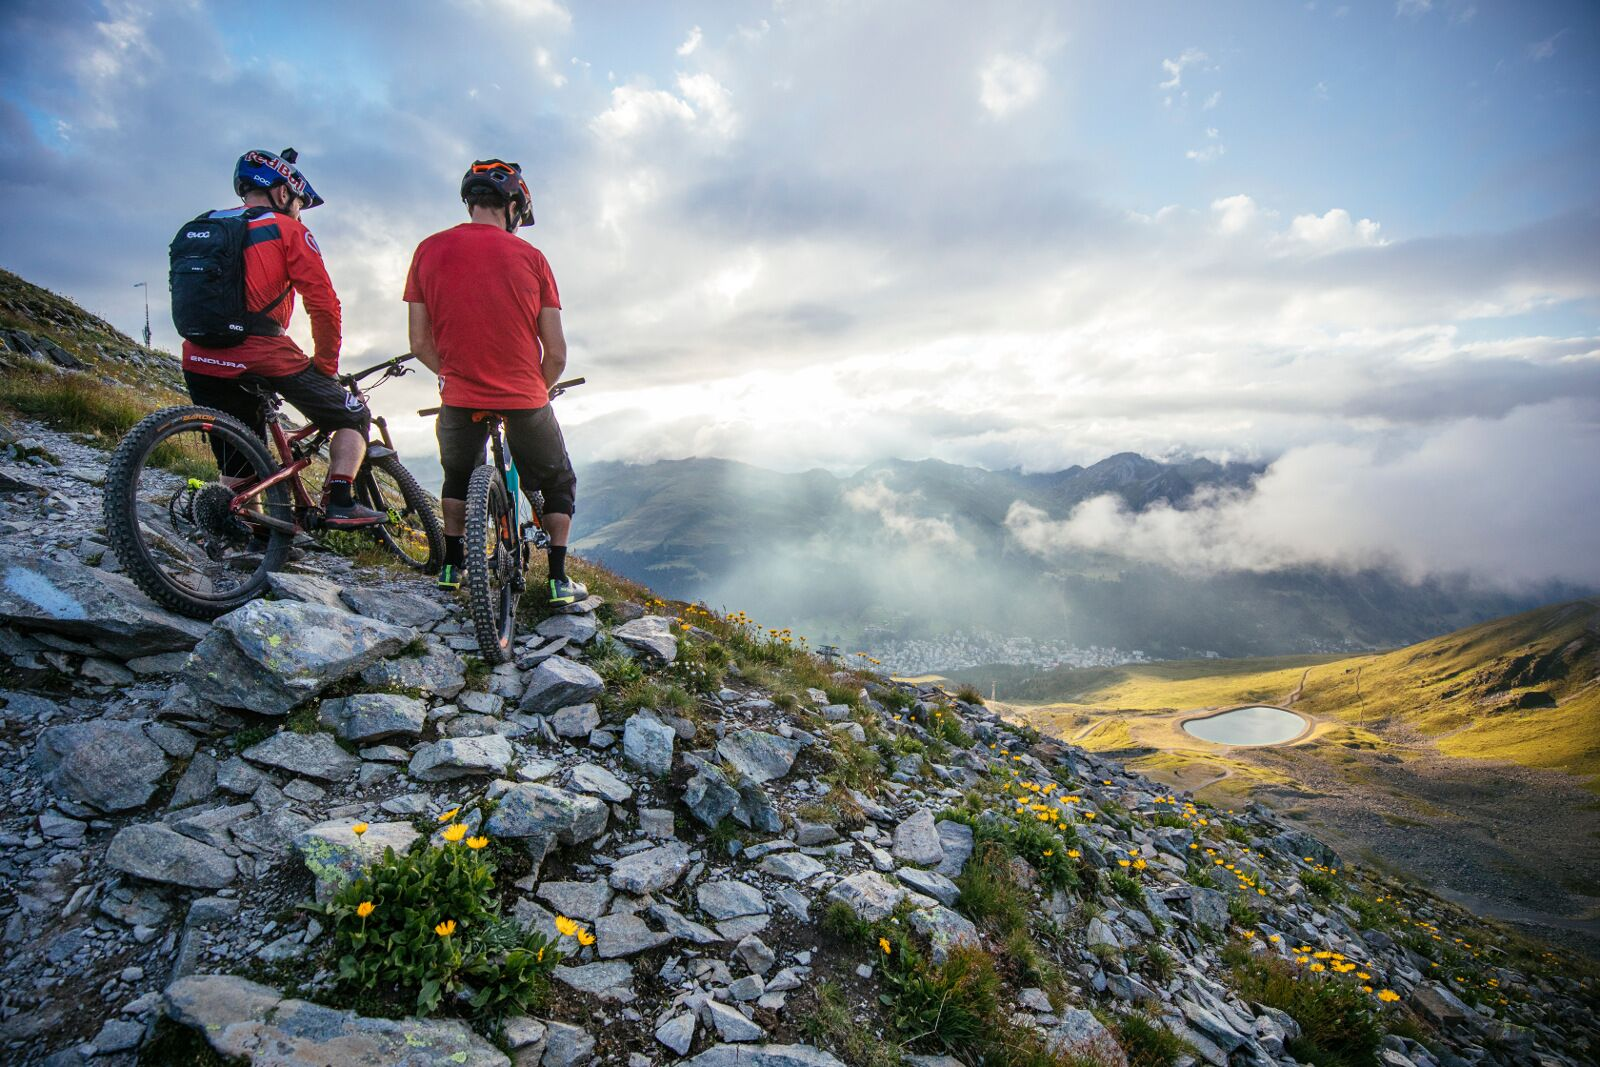 Danny MacAskill and Cladio Caluori explore Swiss cycle tracks in a new video (Martin Blissig)